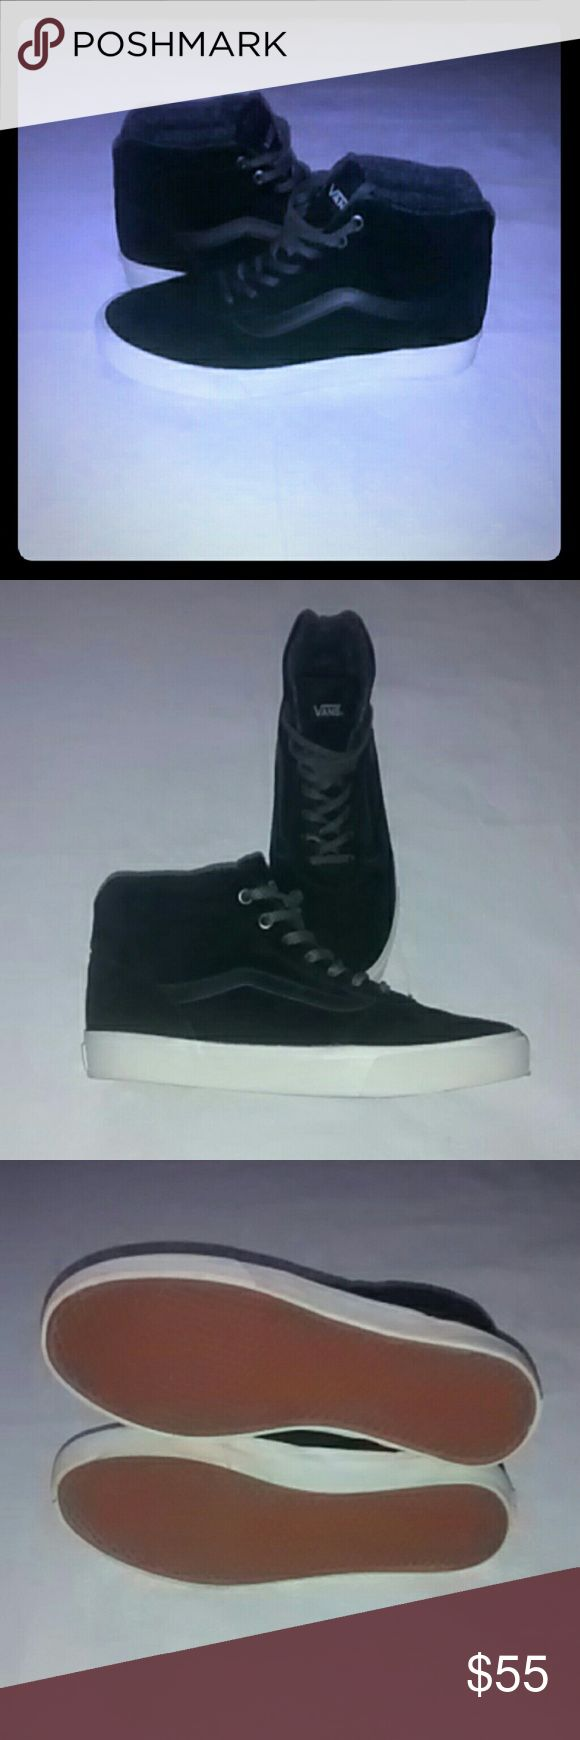 NEW! ❇VANS❇ Suede Mid-Tops These are in NEW condition! I wore them for about an hr, inside, but they're just slightly too snug for me😞 Very cool black suede mid-tops in Perfect NEW condition @ a fantastic price!😉💕 Vans Shoes